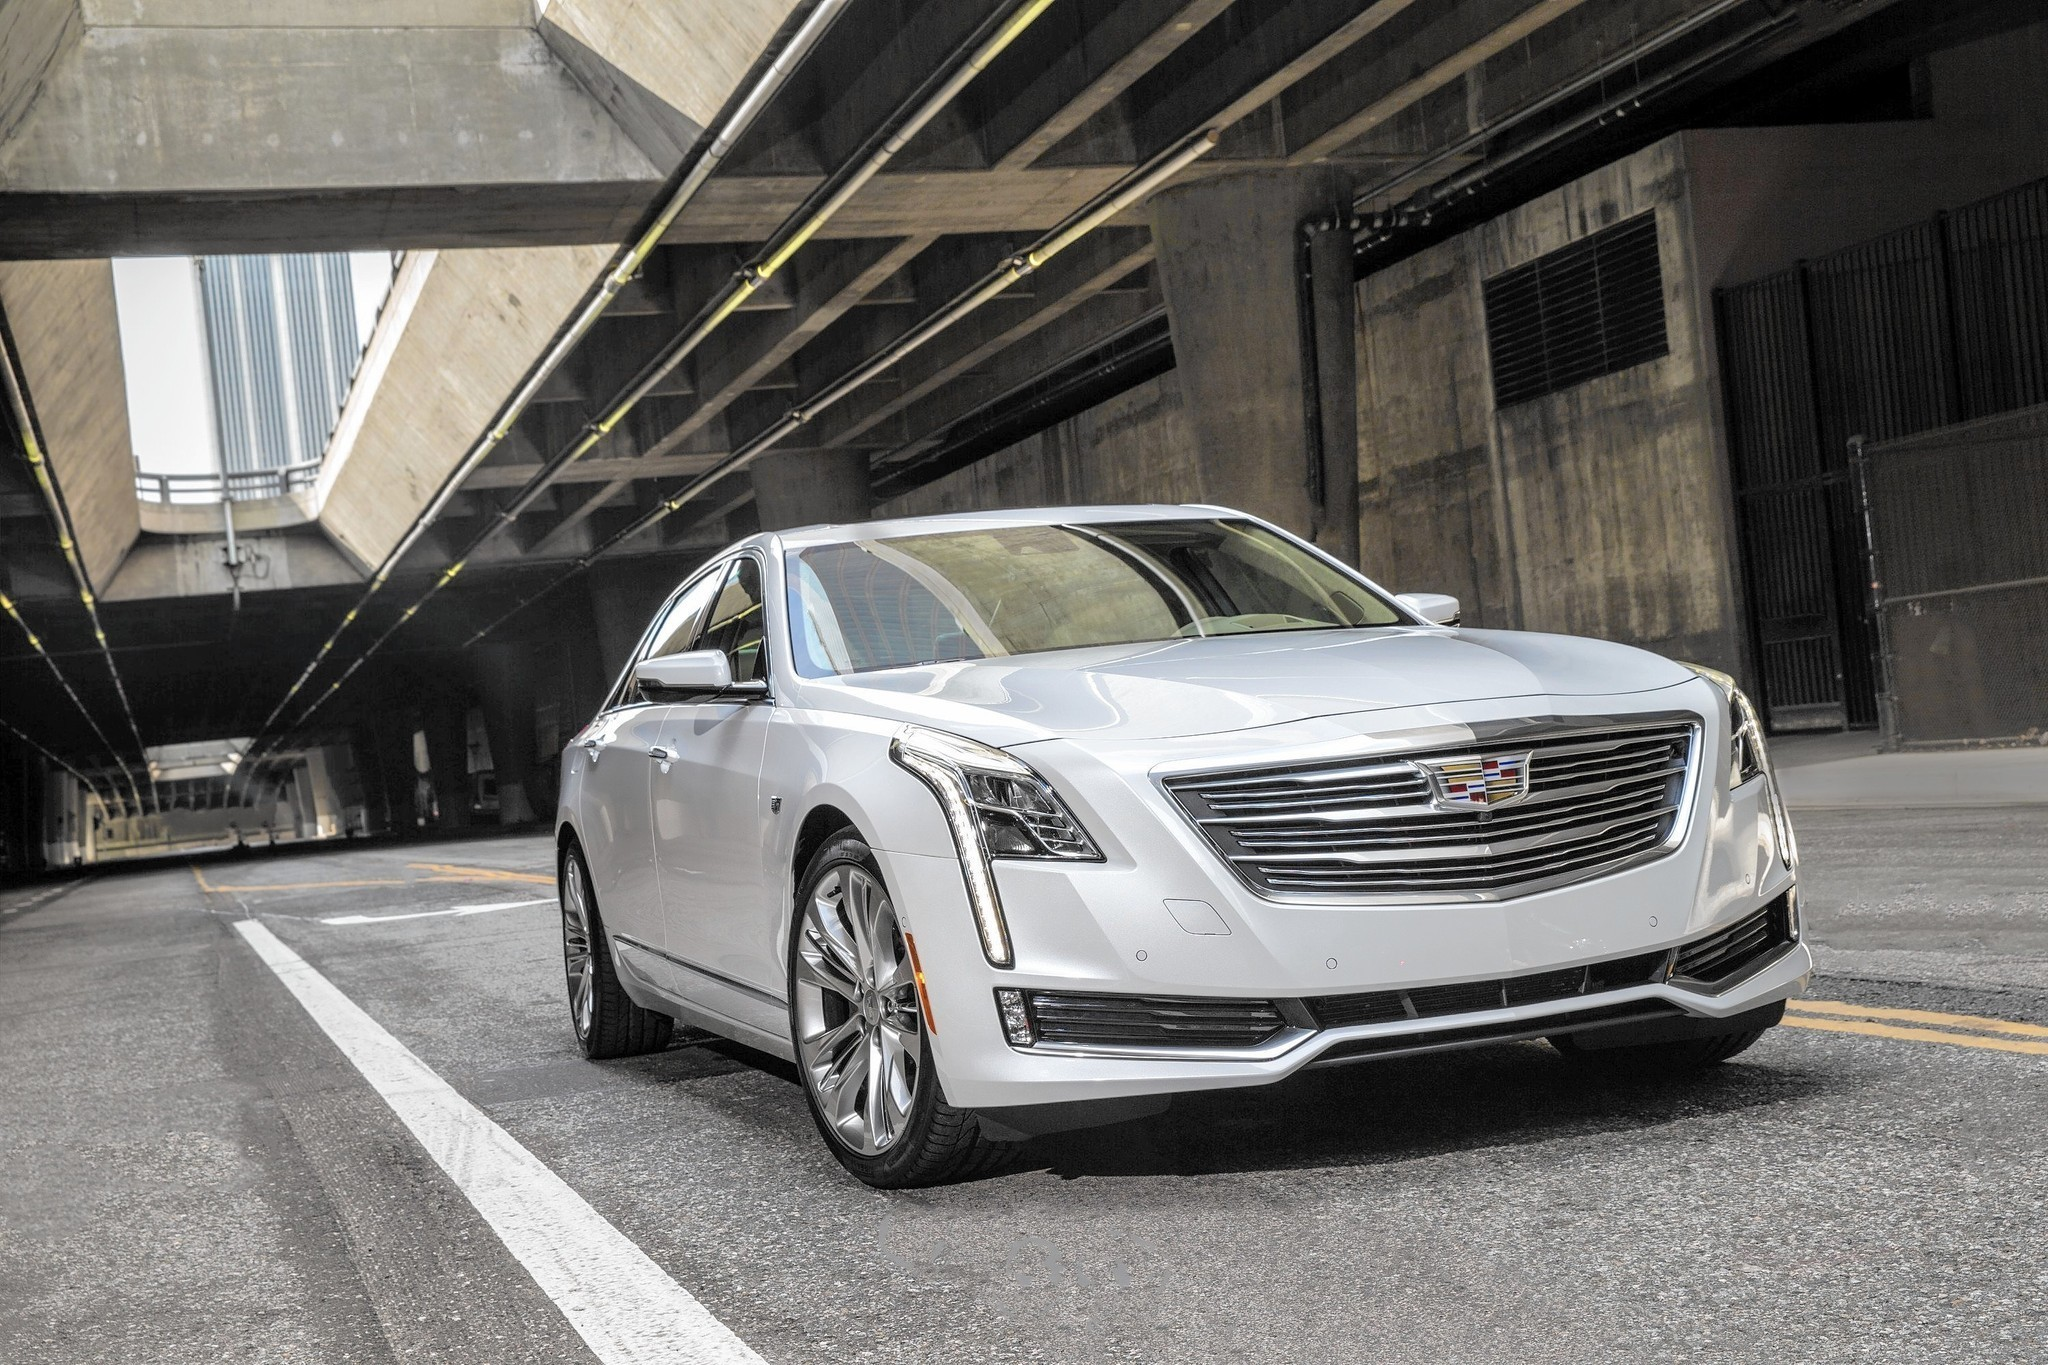 2016 Cadillac CT6 Flagship Sedan Is American Luxury Understated But Loaded